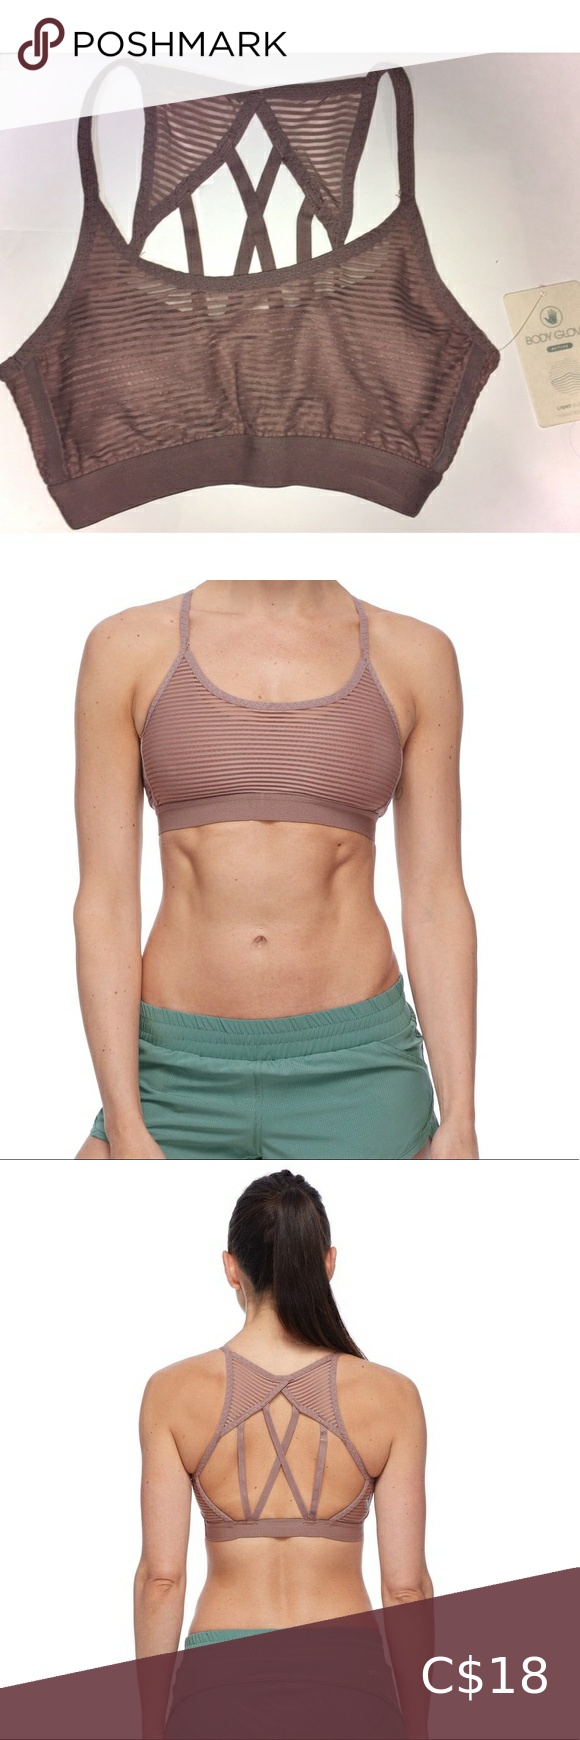 Body Glove Womens Sunna Light Support Activewear Sport Bra